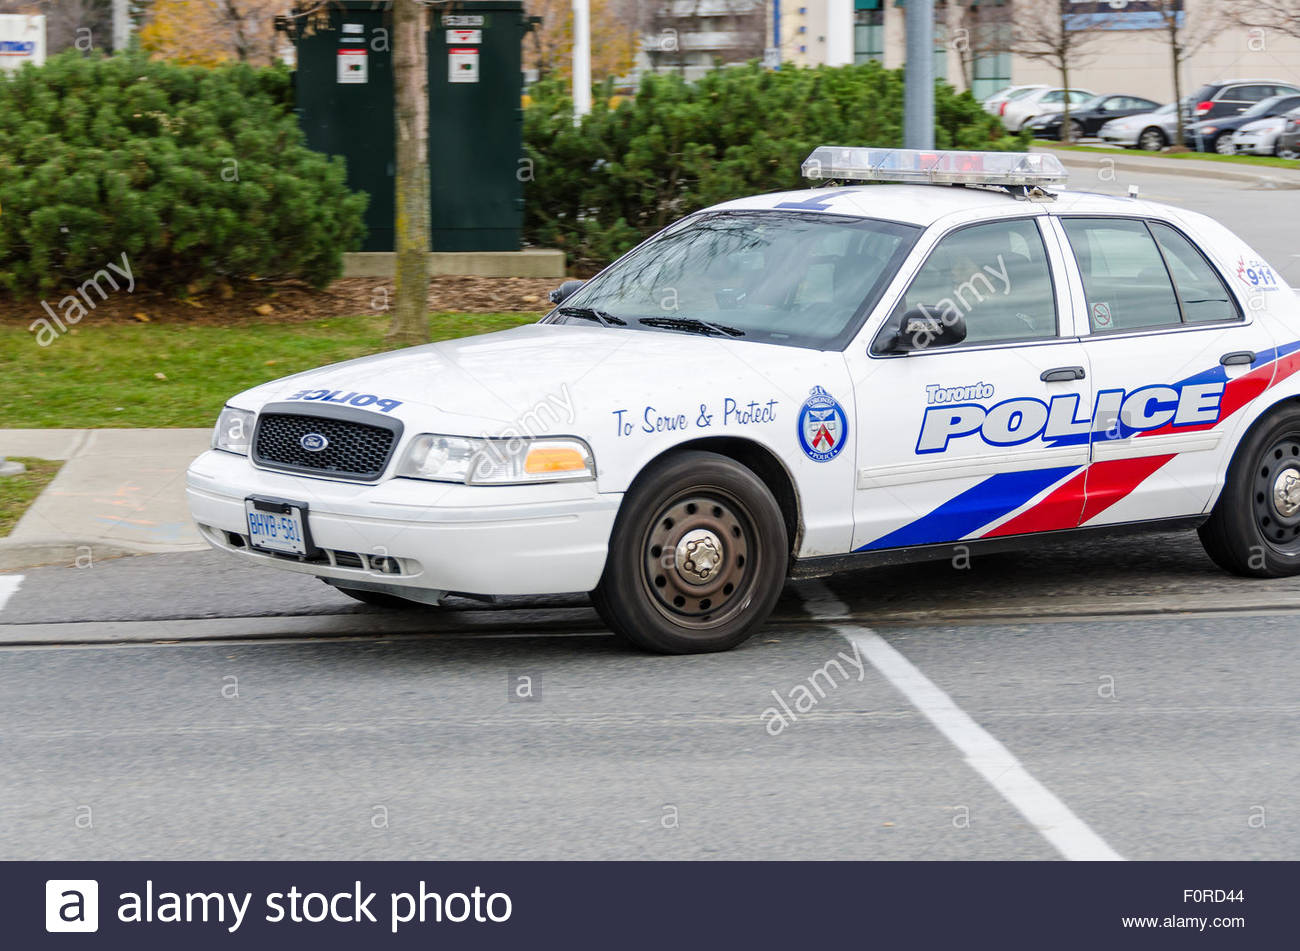 Toronto Police Car: Toronto Police Service is the largest municipal police service in Canada and third largest police Stock Photo